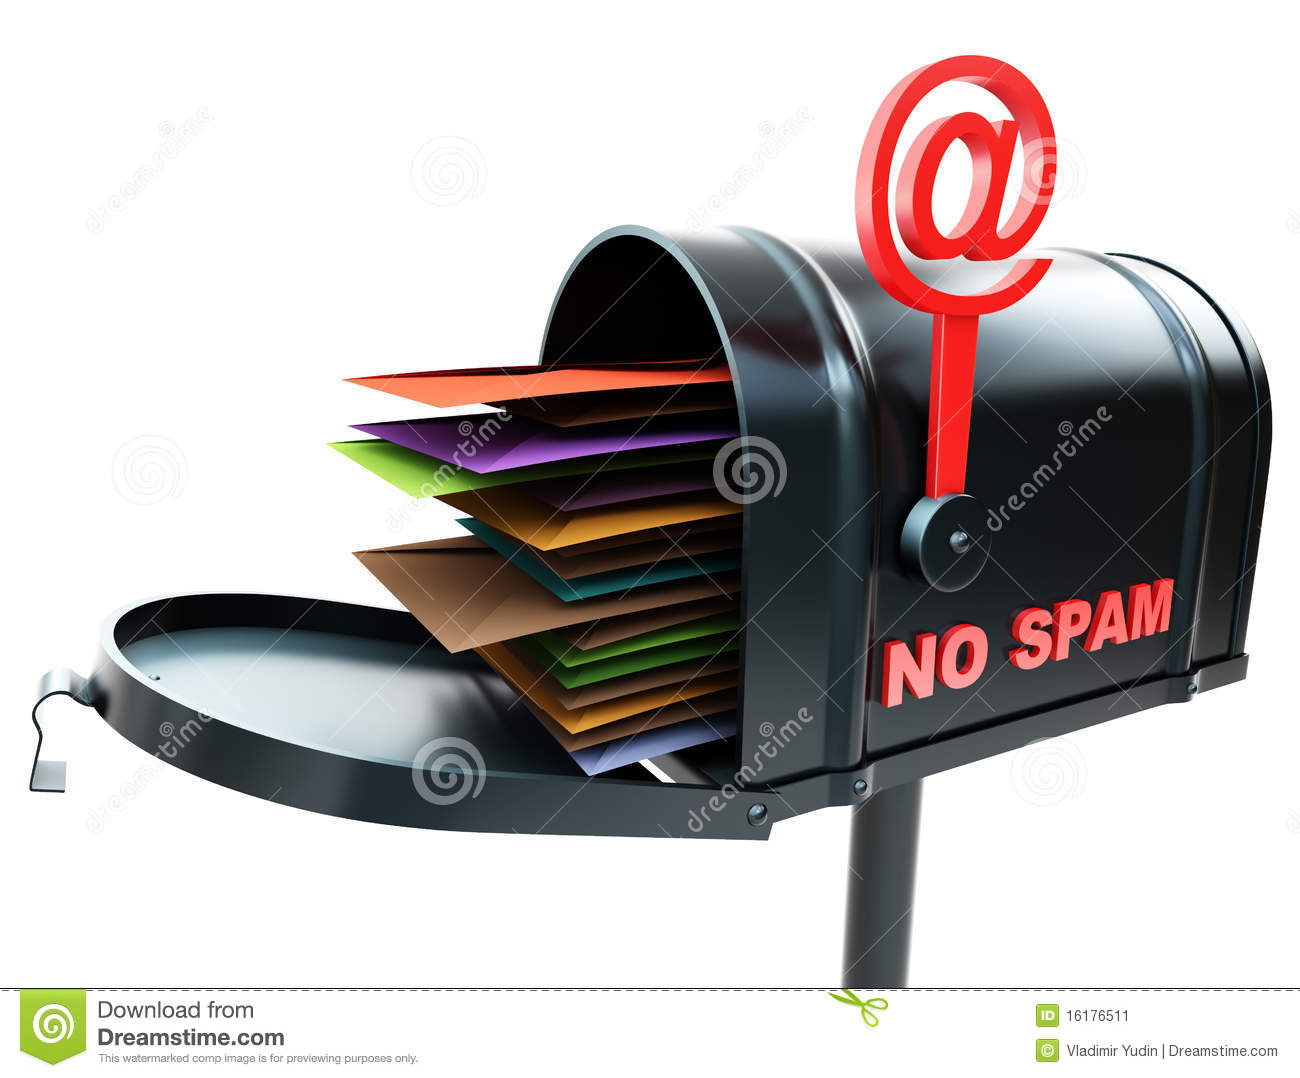 Mailbox No Spam Stock Image - Image: 16176511